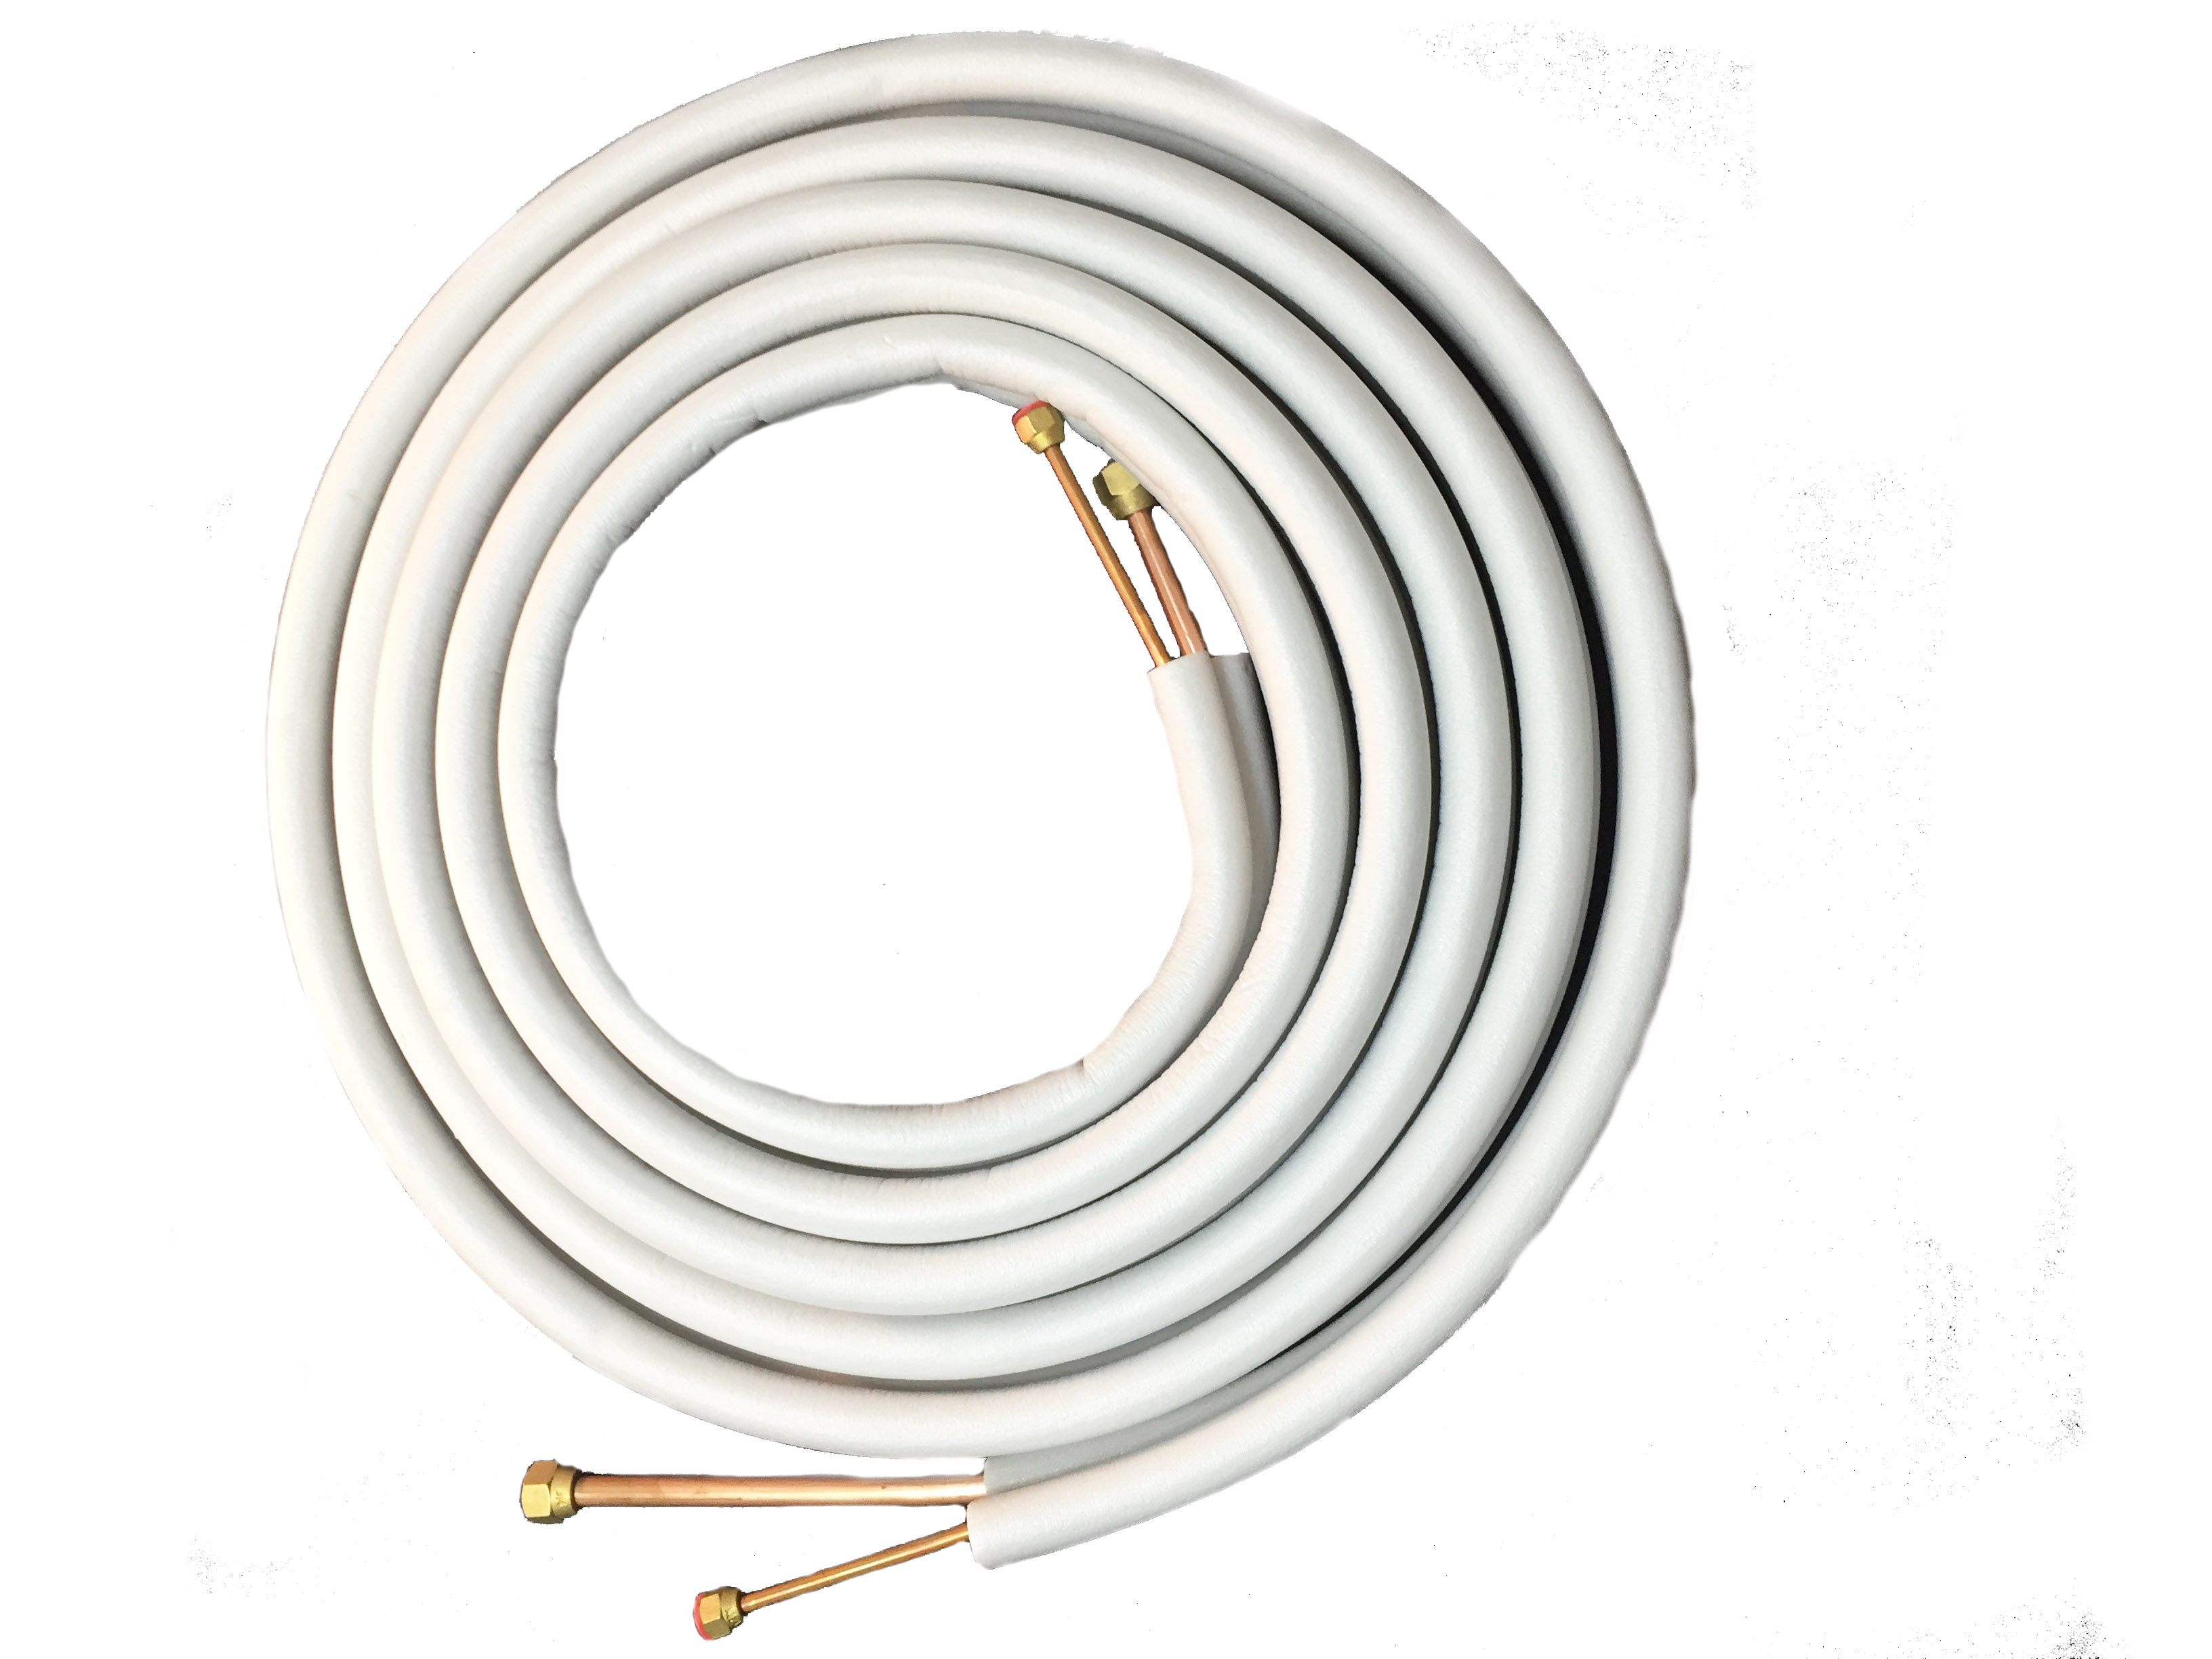 3 8 X 5 Mini Split Copper Installation 9pc Kit 25 Haier Air Conditioner Wiring Diagram Insulated Lines W Screw On Compression Nuts 16 4 Wire Neoprene Putty To Fill In Seal Up Wall Openings